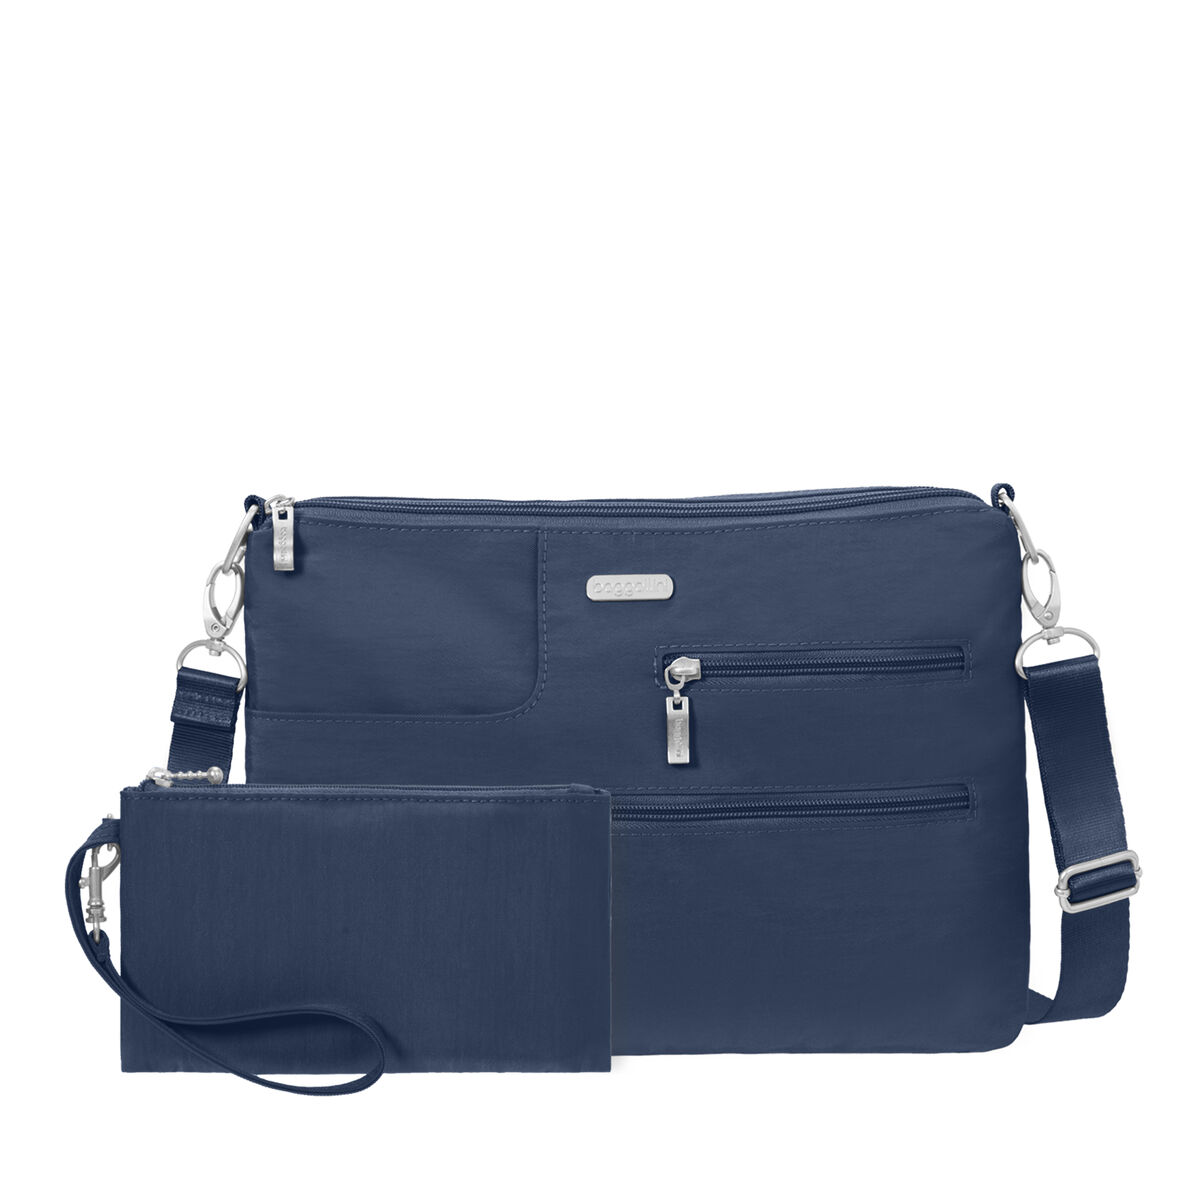 rfid tablet crossbody bag